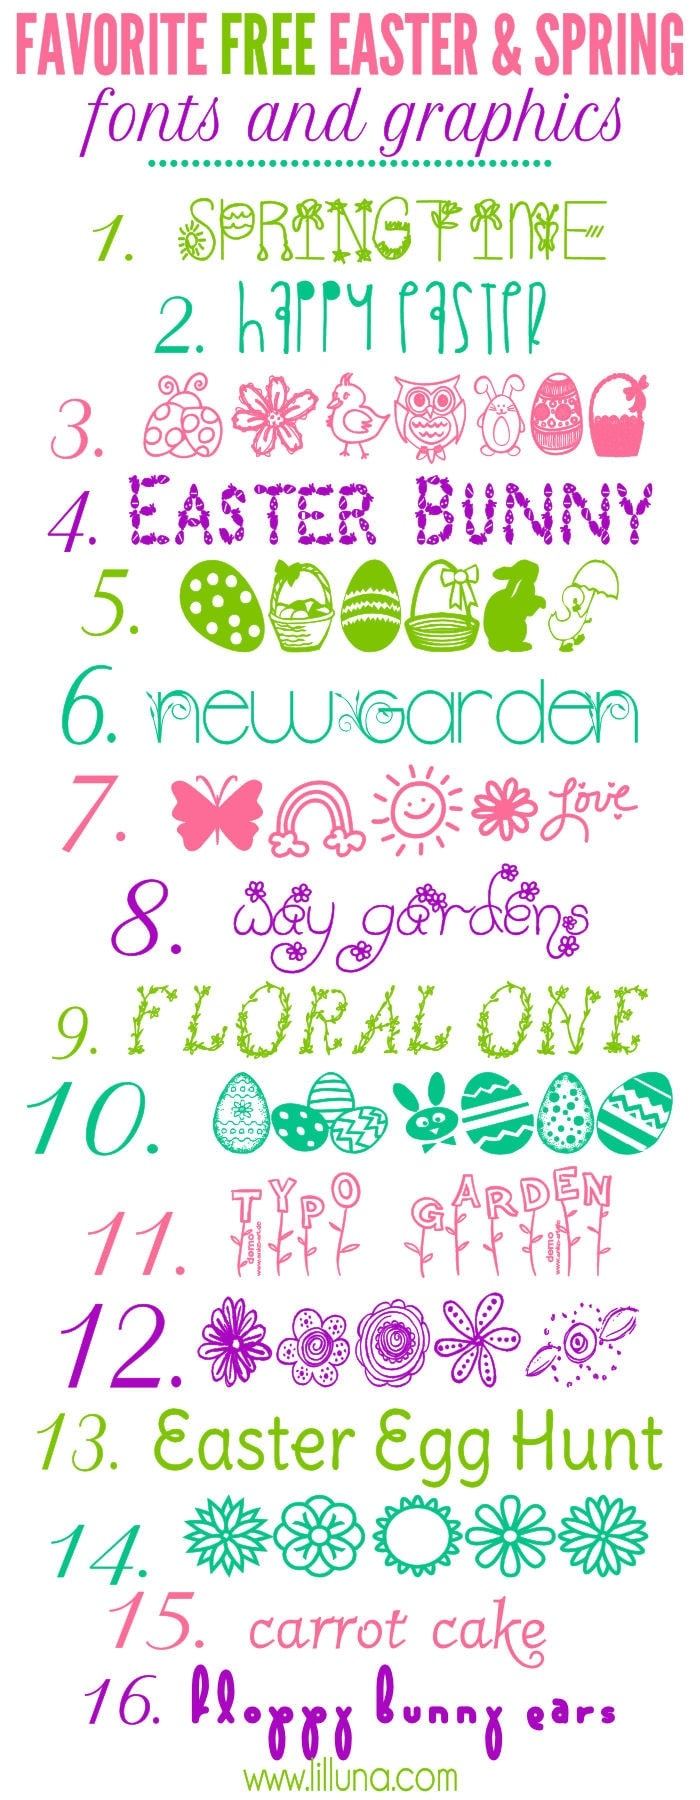 Favorite FREE Easter and Spring Fonts and Graphics on { lilluna.com } Cute prints to download and use!